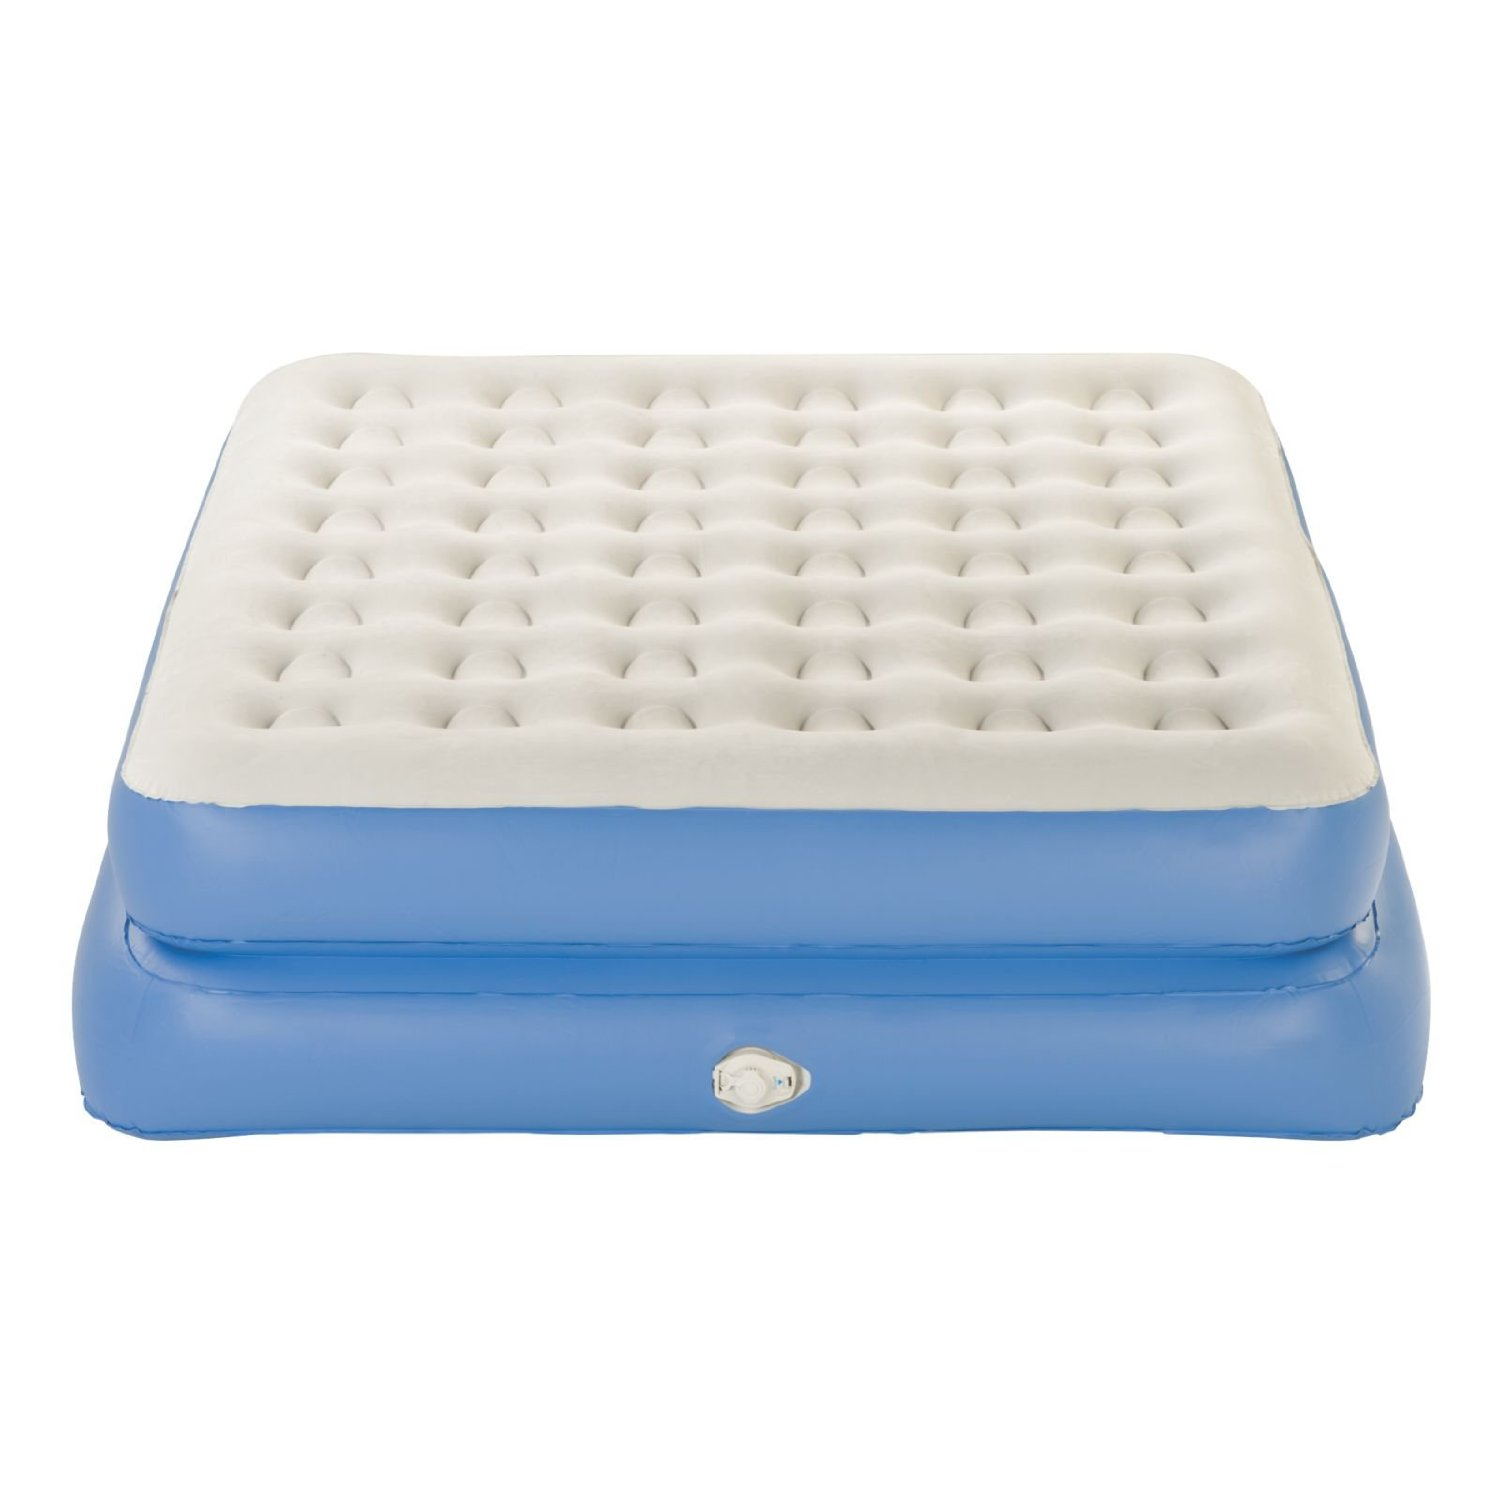 aerobed double high air bed combo - walmart